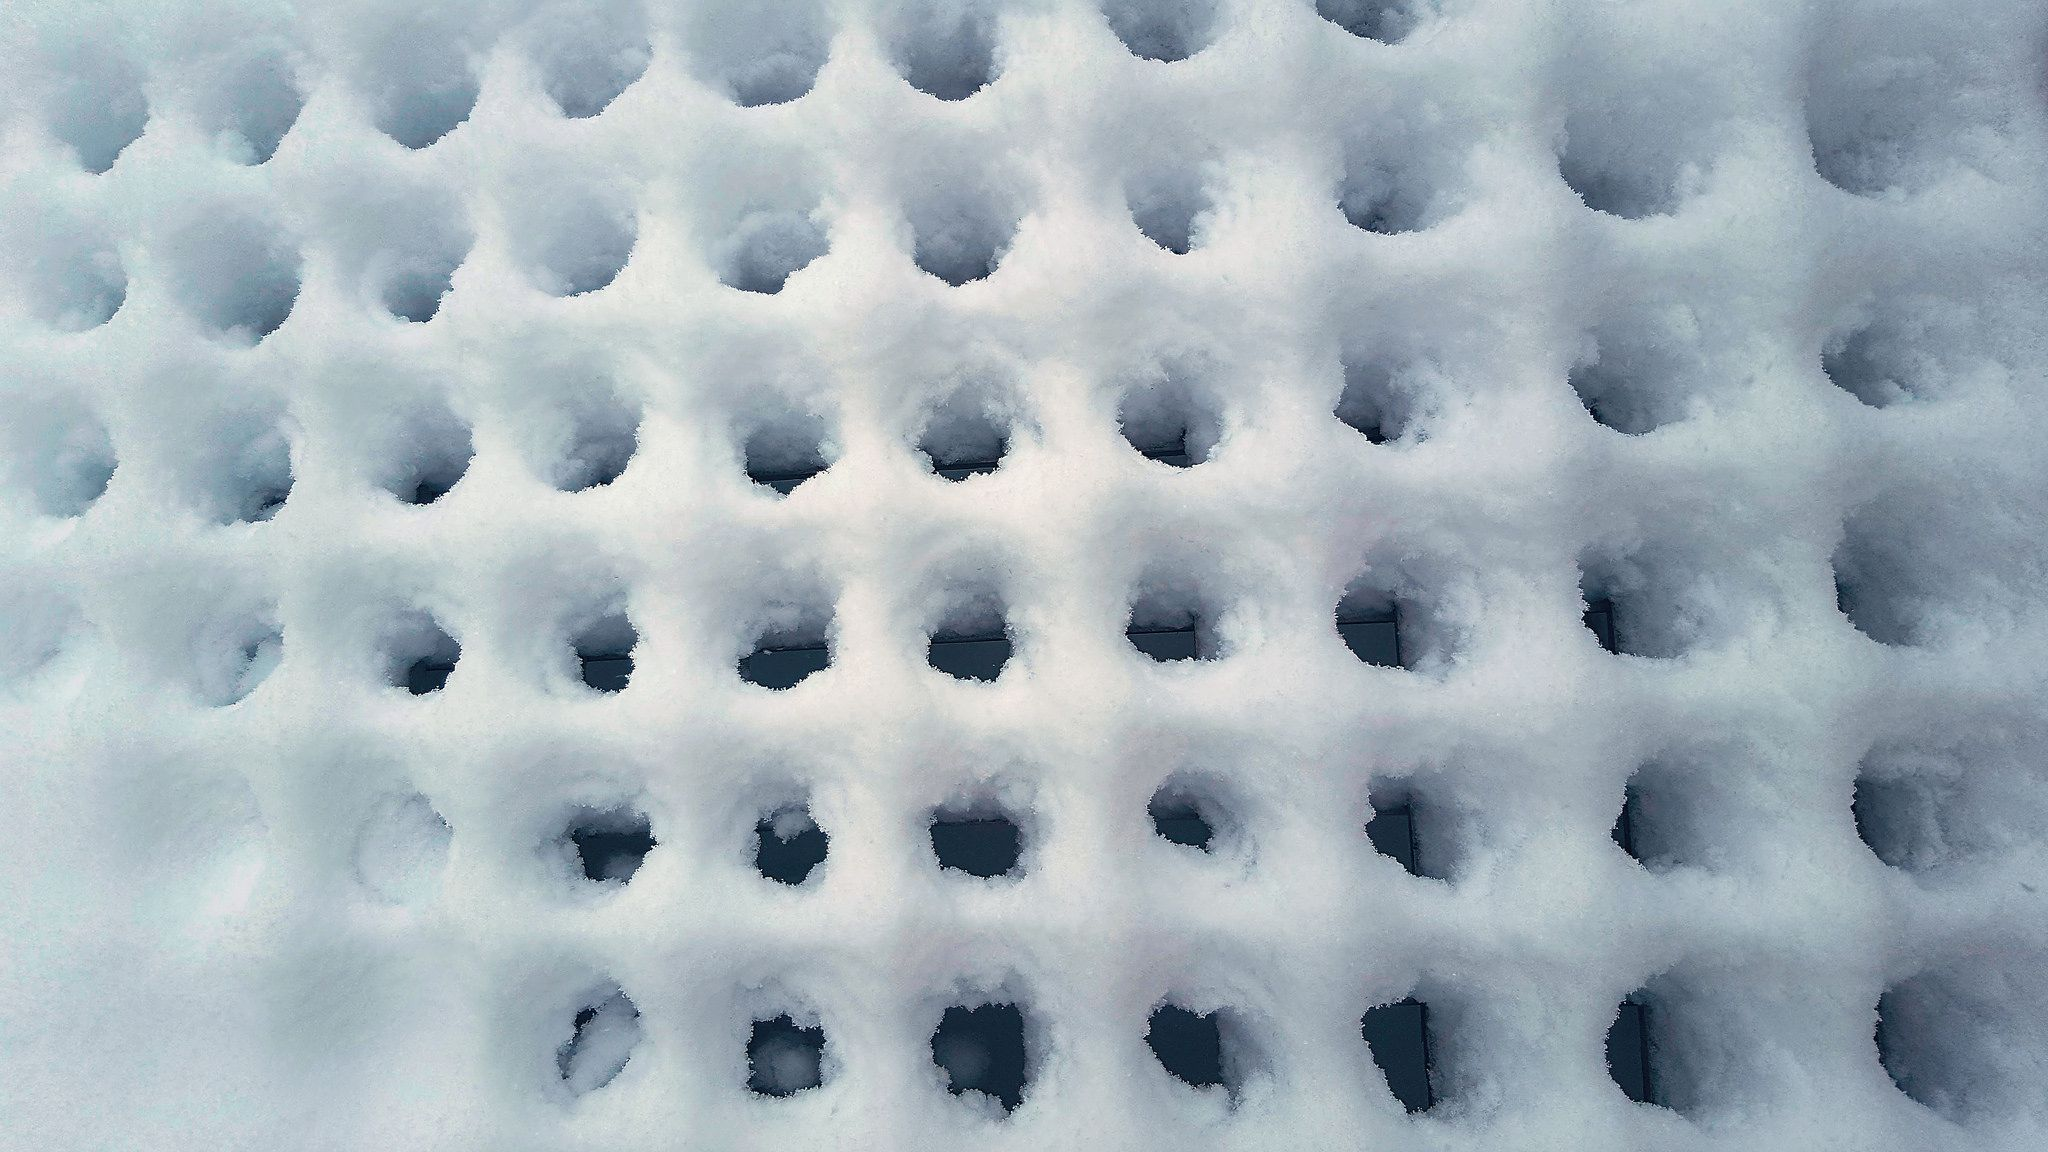 Winter Texture VI: A week of abstract textures inspired by the frigid beauty of Canadian winter. Today, fresh snow piles thickly over a fallen lattice fence, creating a softly waffled pattern in the snowbank.